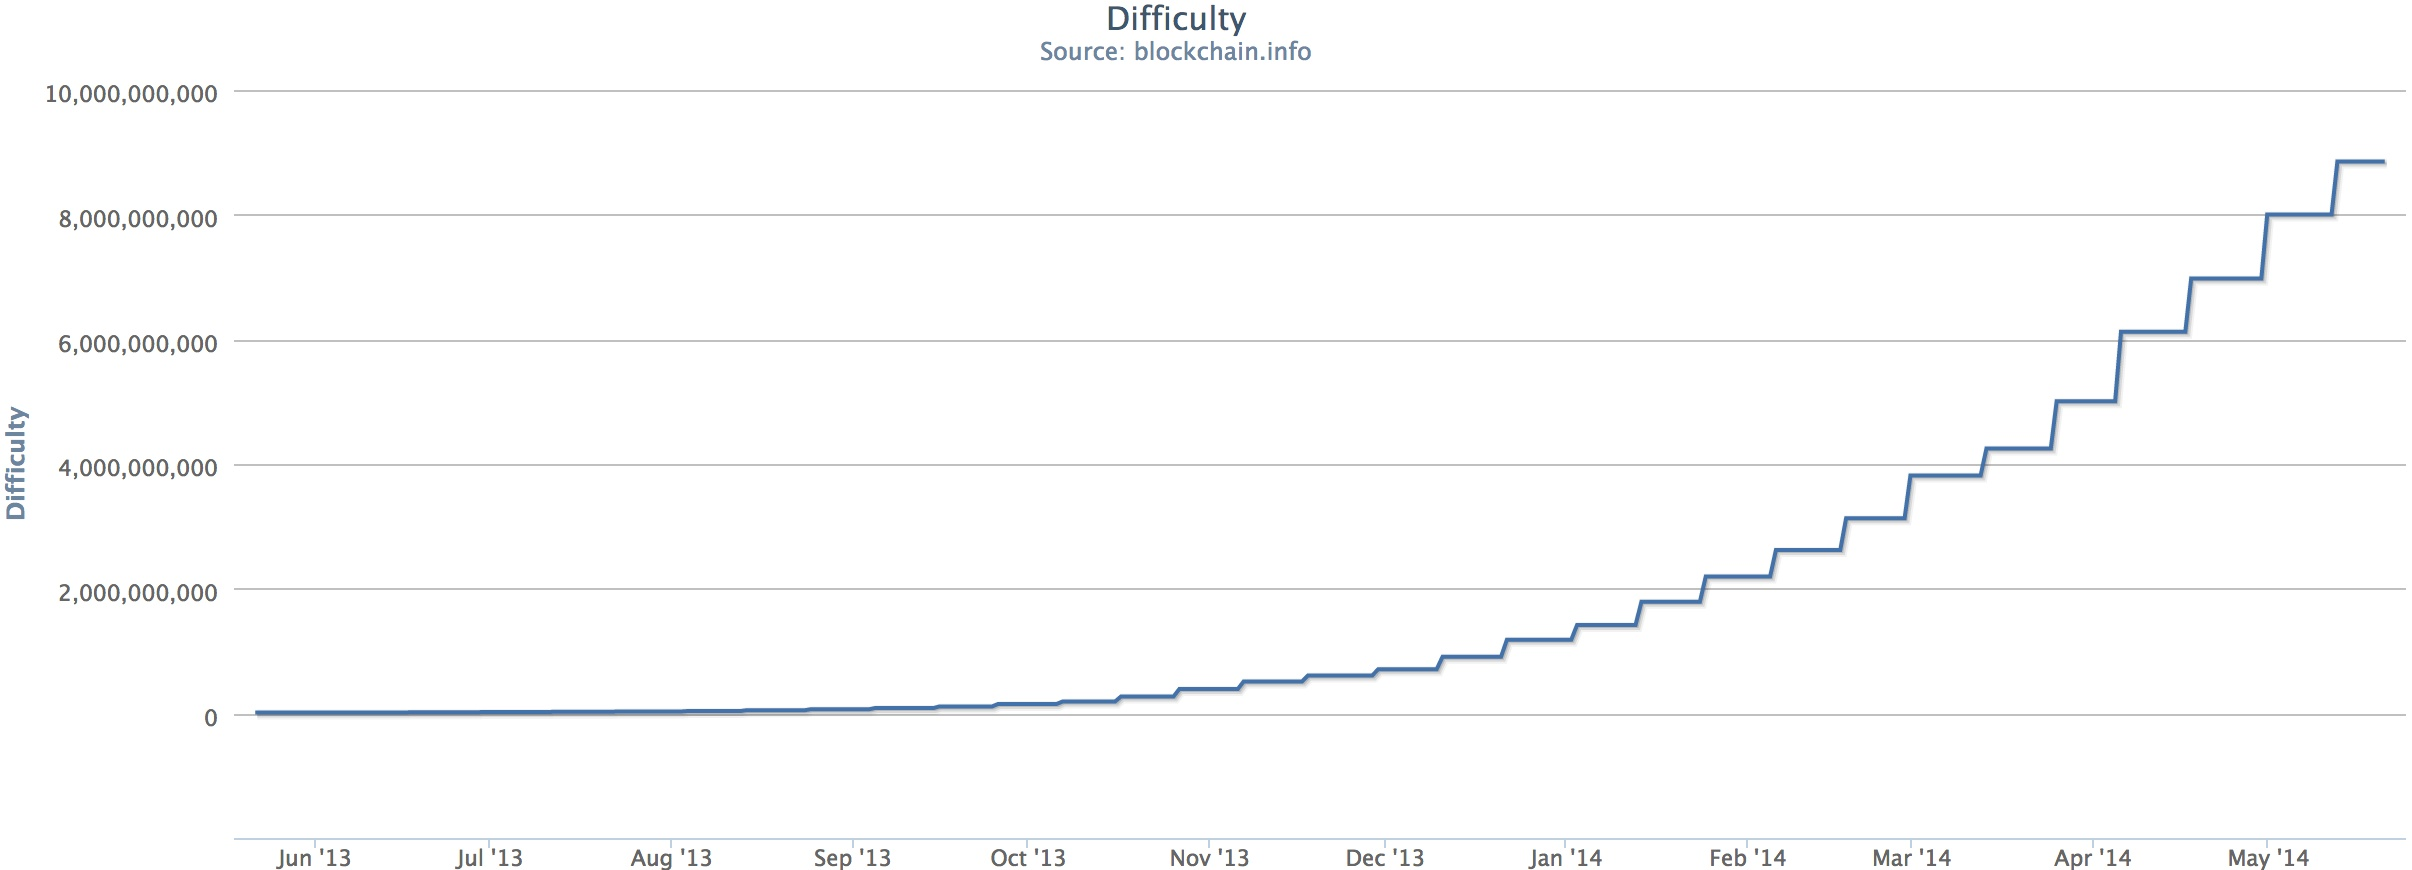 Power curve: Difficulty on the Bitcoin network over the past year. Source: Blockchain.info